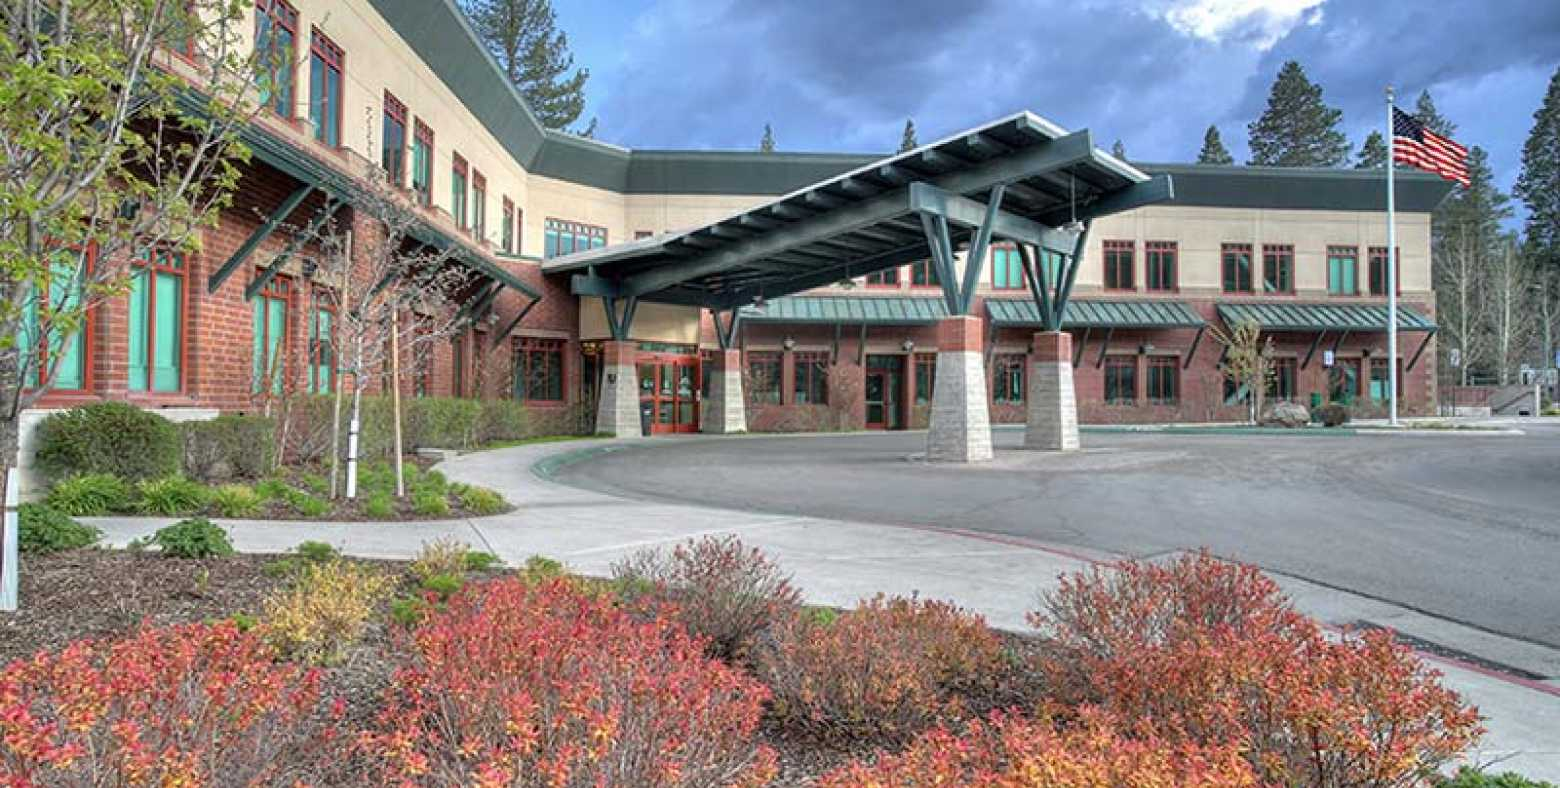 Front entrance of Tahoe Forest Hospital